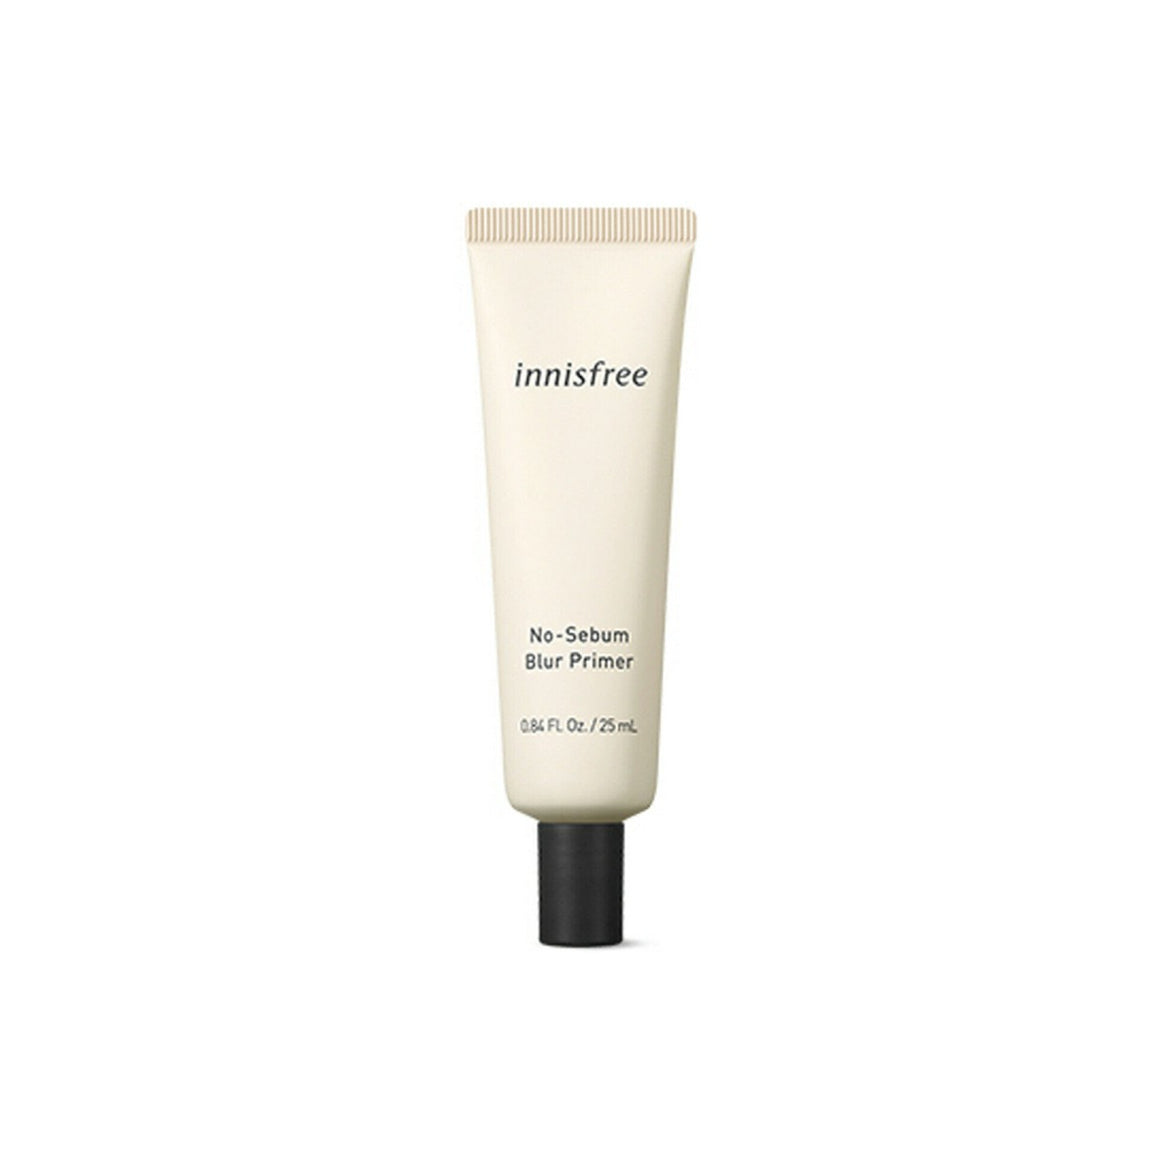 Innisfree No-Sebum Blur Primer